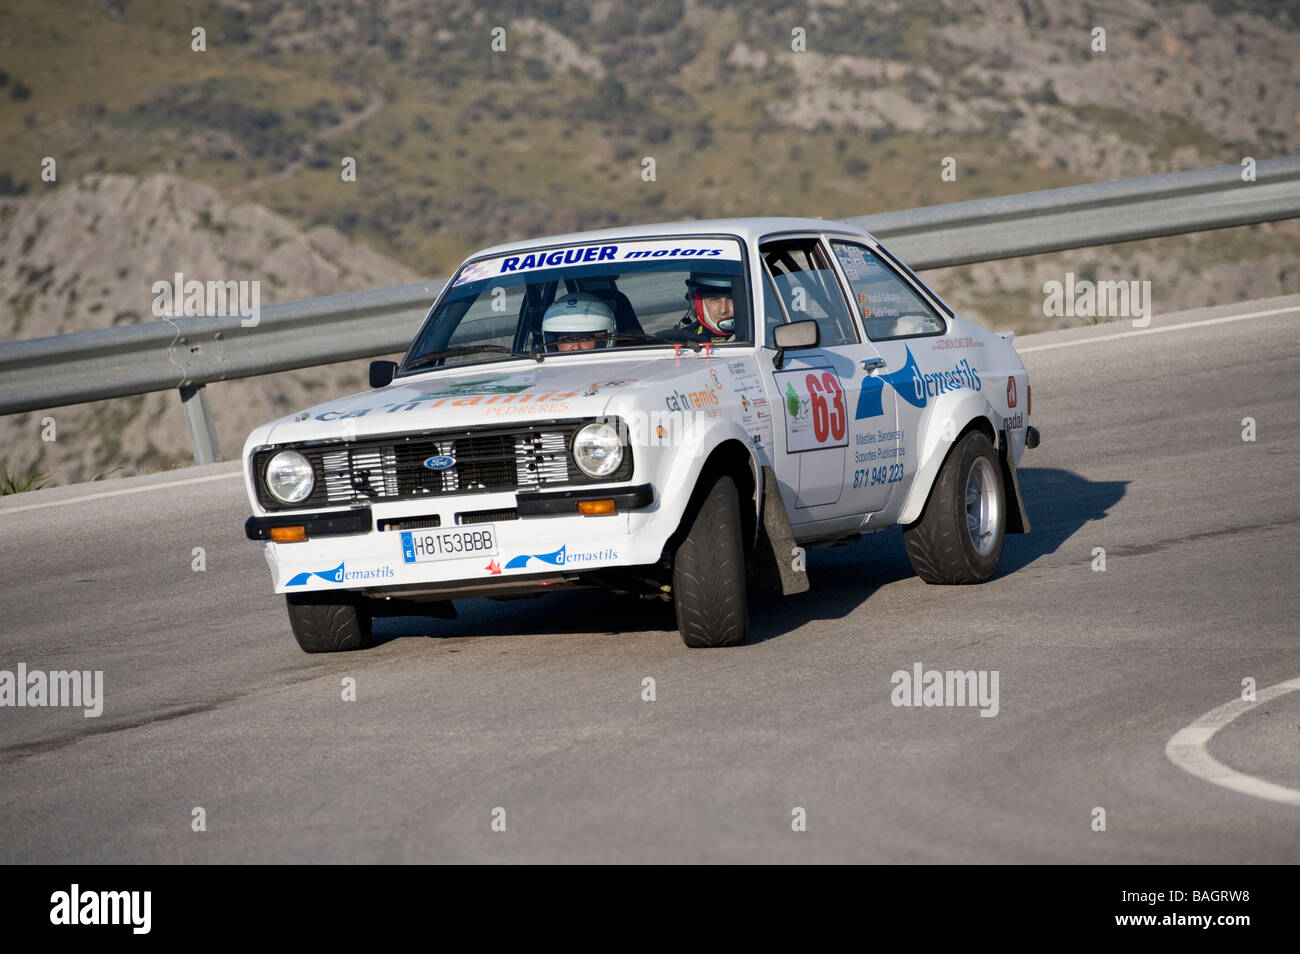 White 1975 Ford Escort classic sports car racing in the Classic car rally Mallorca - Stock Image